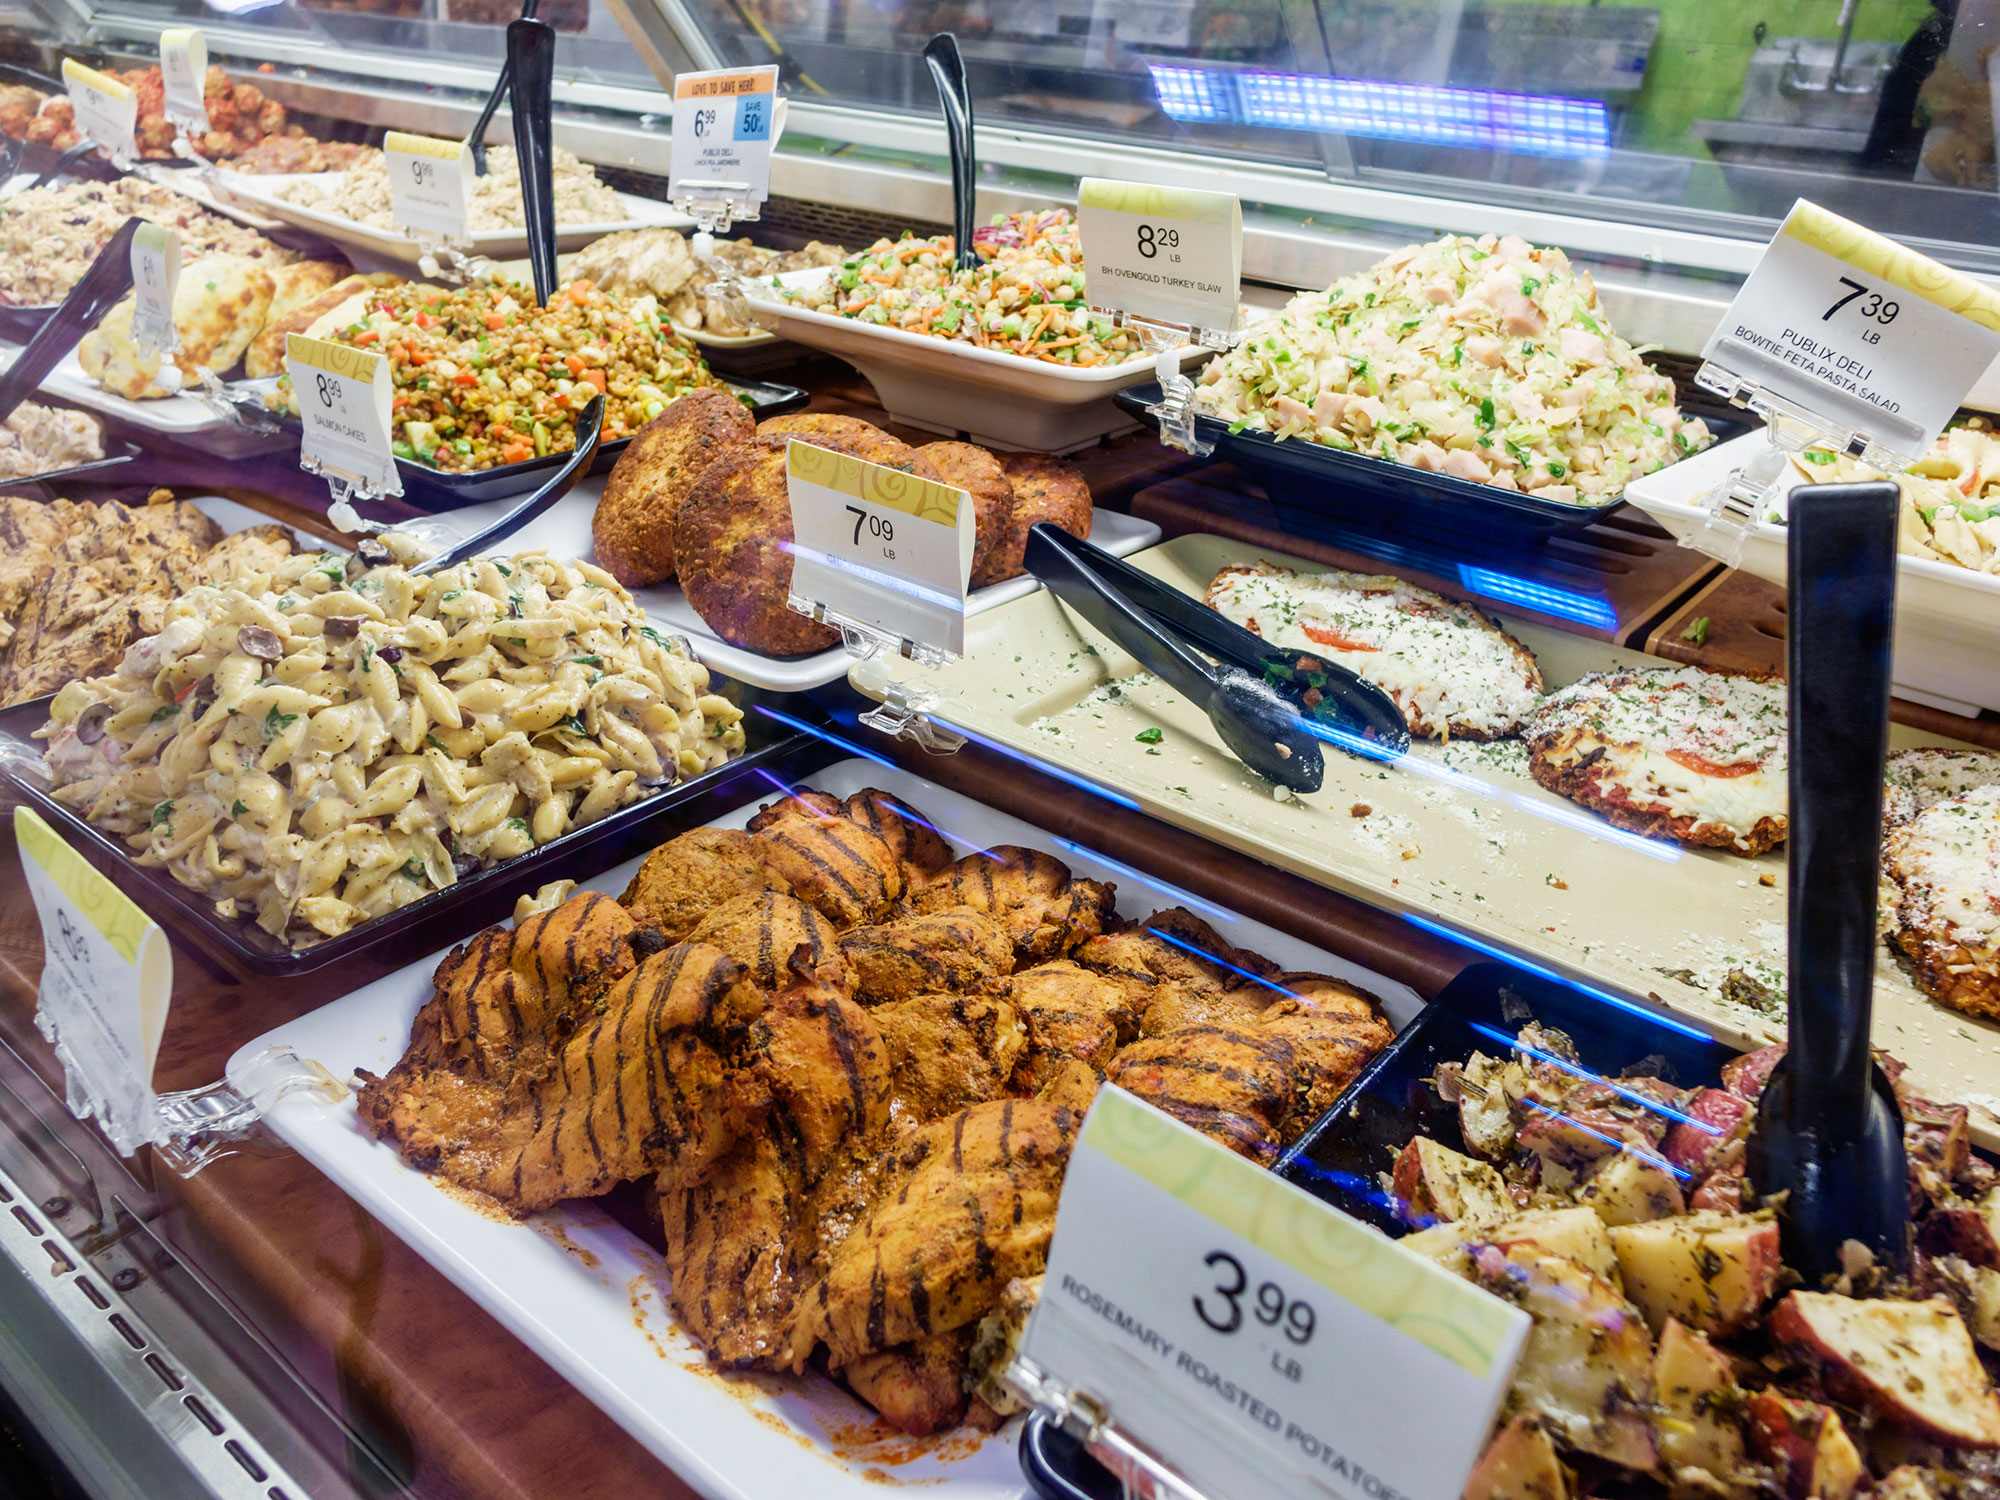 The Best Supermarket Family Meal Deals You Should Know About